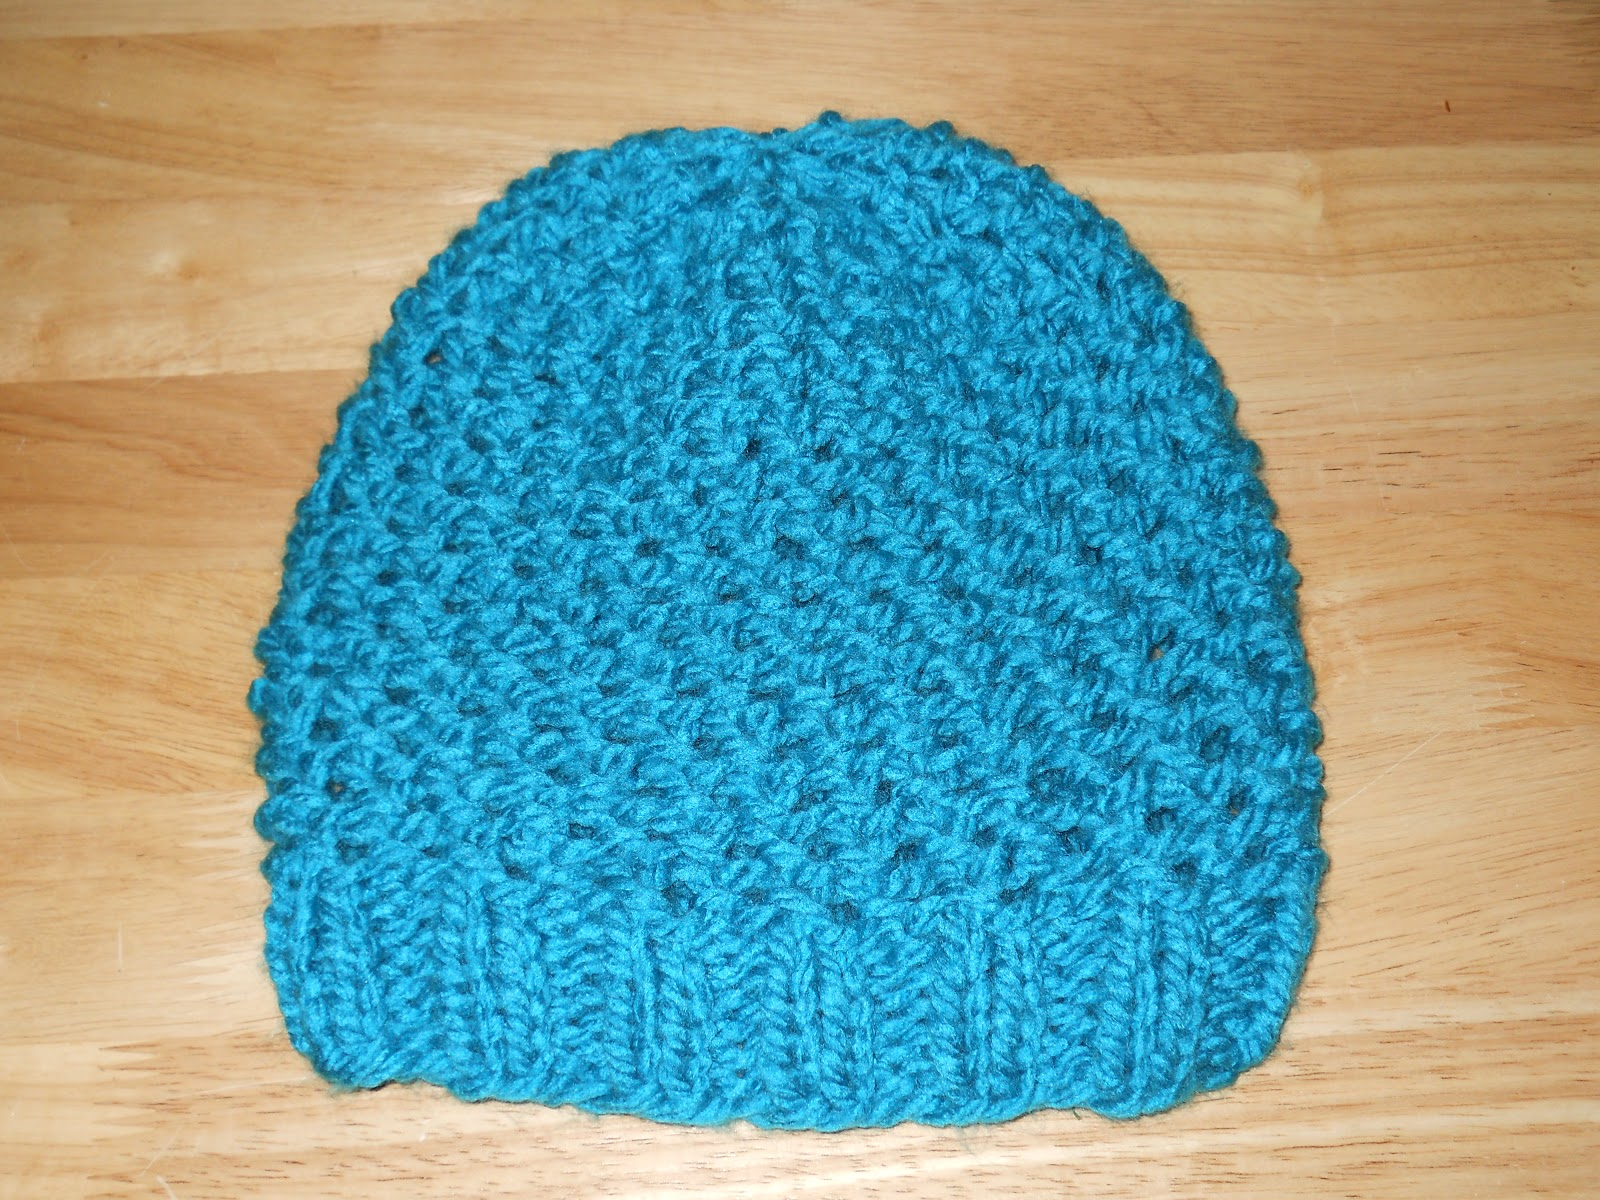 Knitting with Schnapps: Crossed Comfort Cap